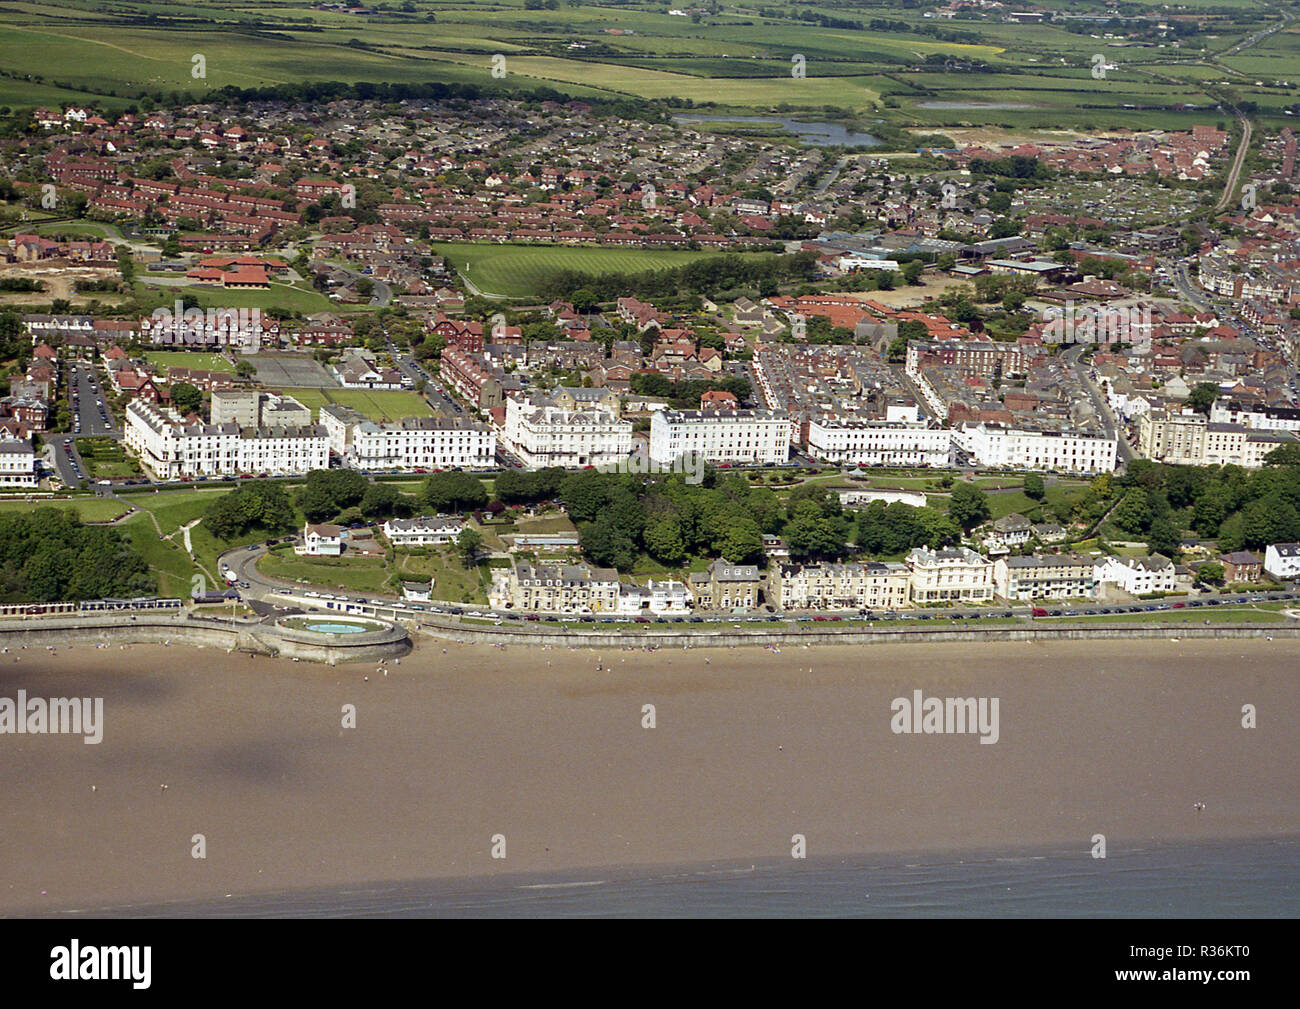 Aerial photo of seaside resort of Filey North Yorkshire showing upper and lower promenades and countryside behind the town - Stock Image